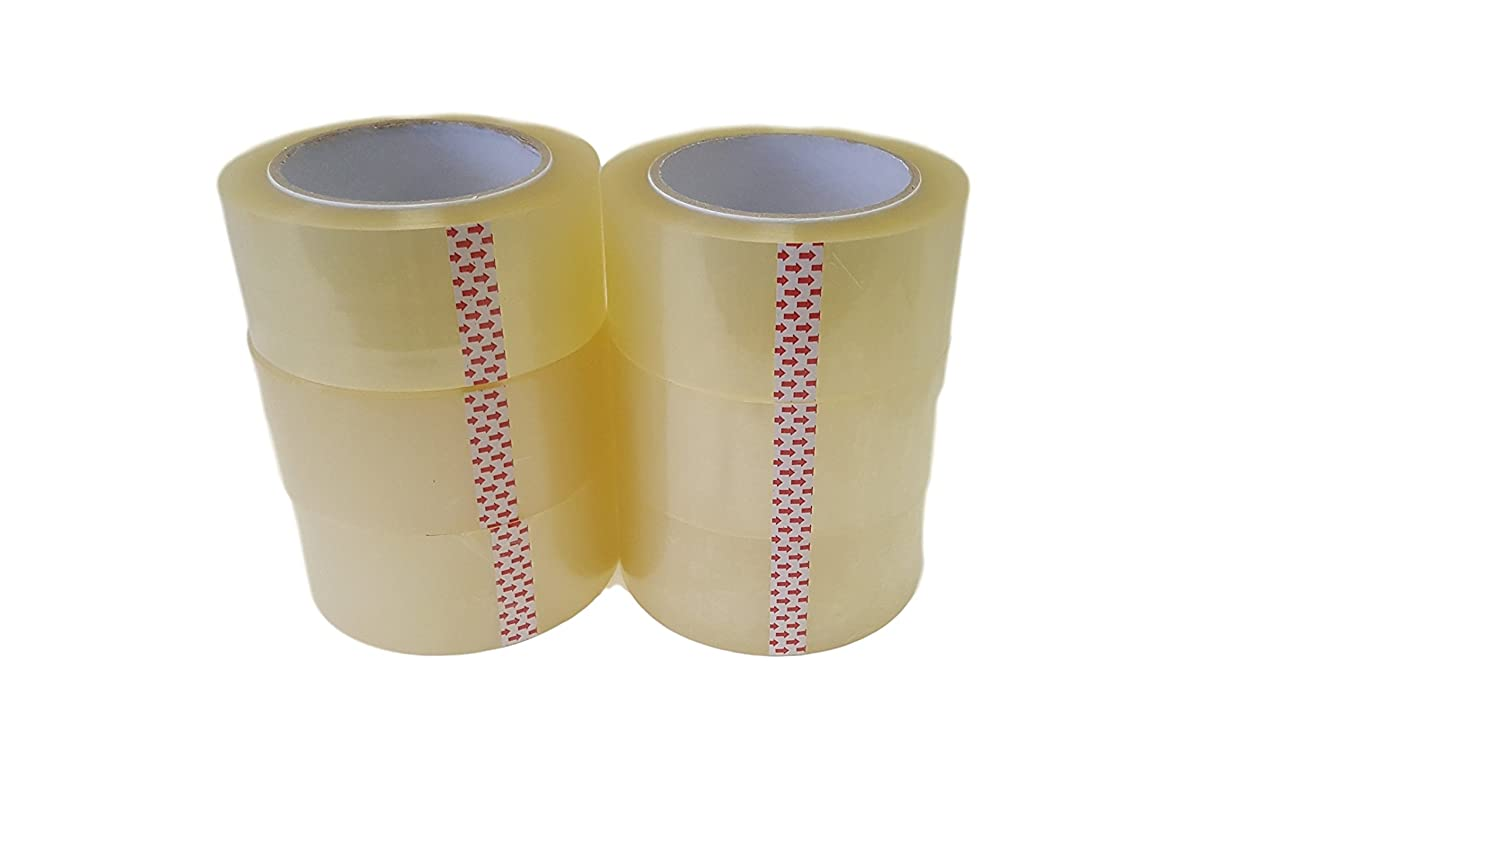 Oknuu 6-Rolls Clear Packaging Packing Tape 2x110 Yards 48mm x 100m - BOPP Water Based Acrylic Glue - Super Strong Carton Sealing Tape - Extra Heavy Duty - 2.56 MIL Thickness